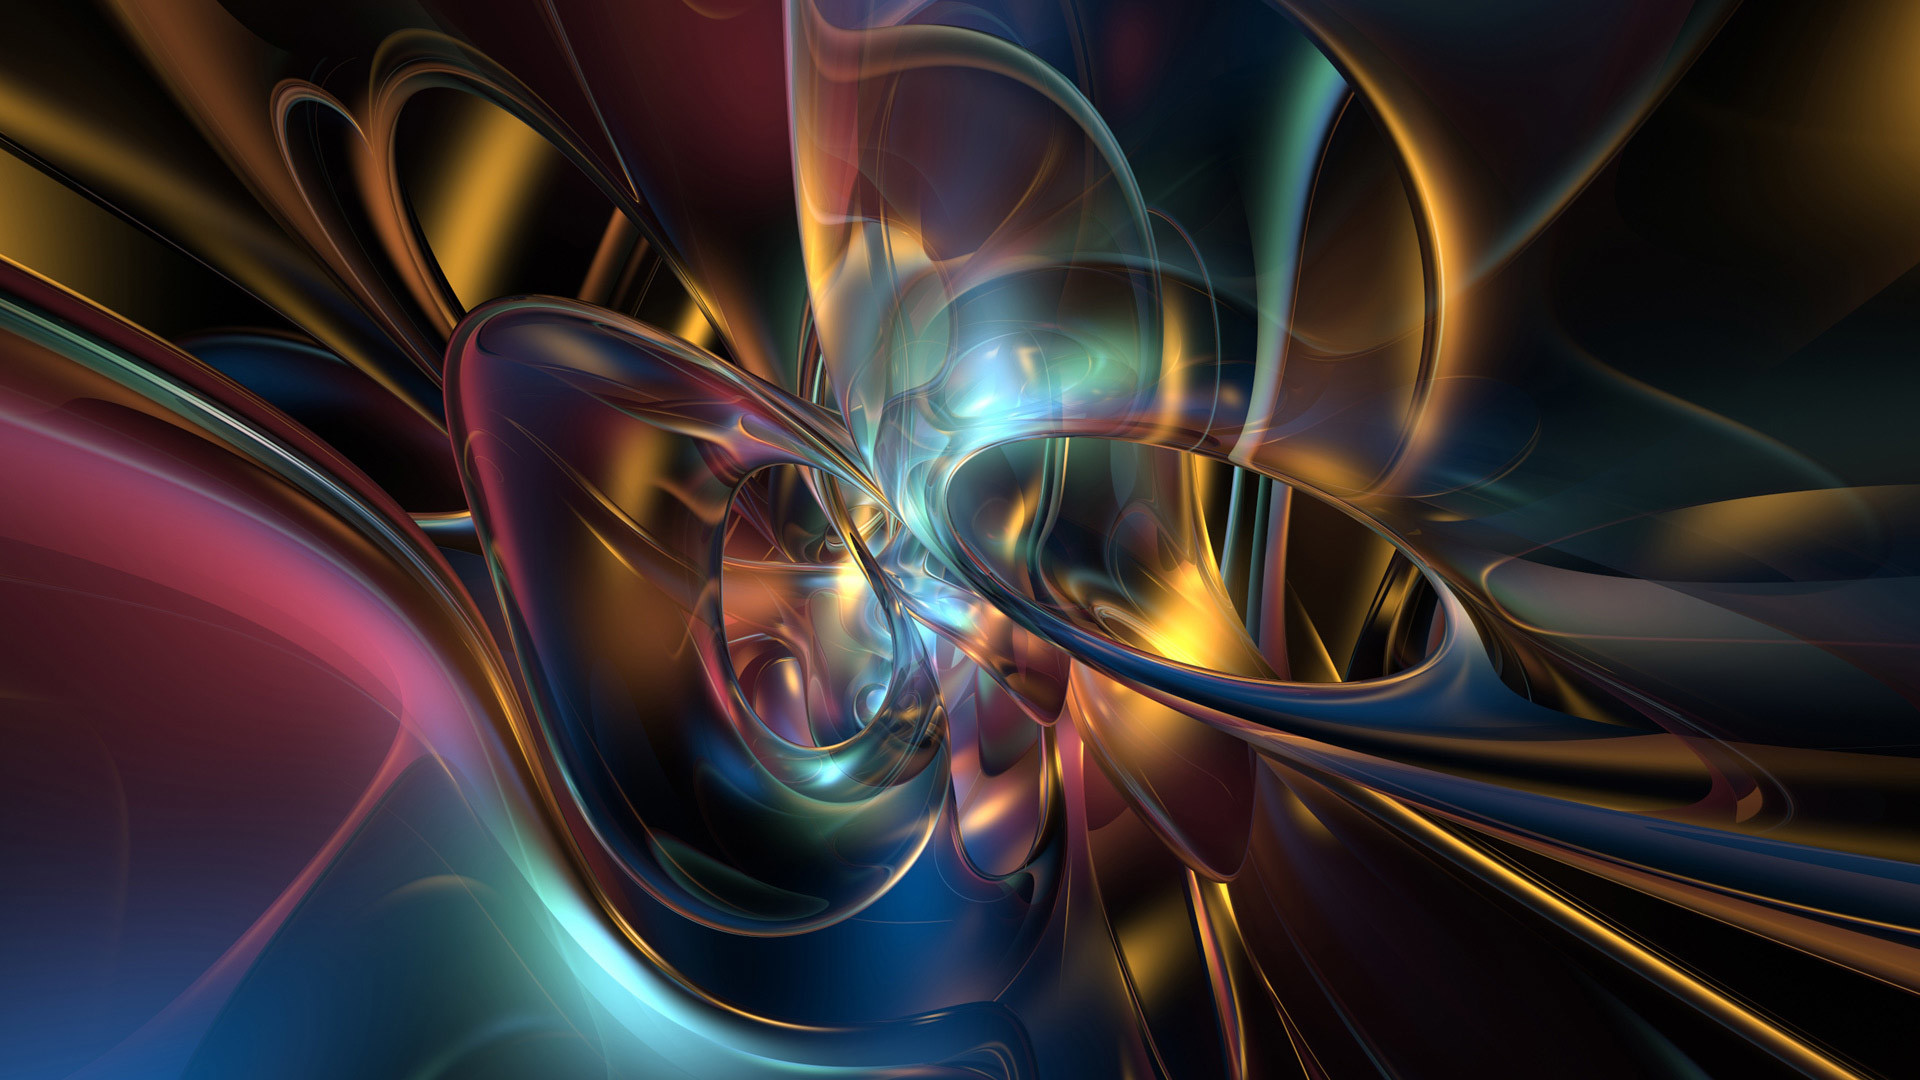 1920x1080 3D Abstract Screensavers 28 Widescreen Wallpaper